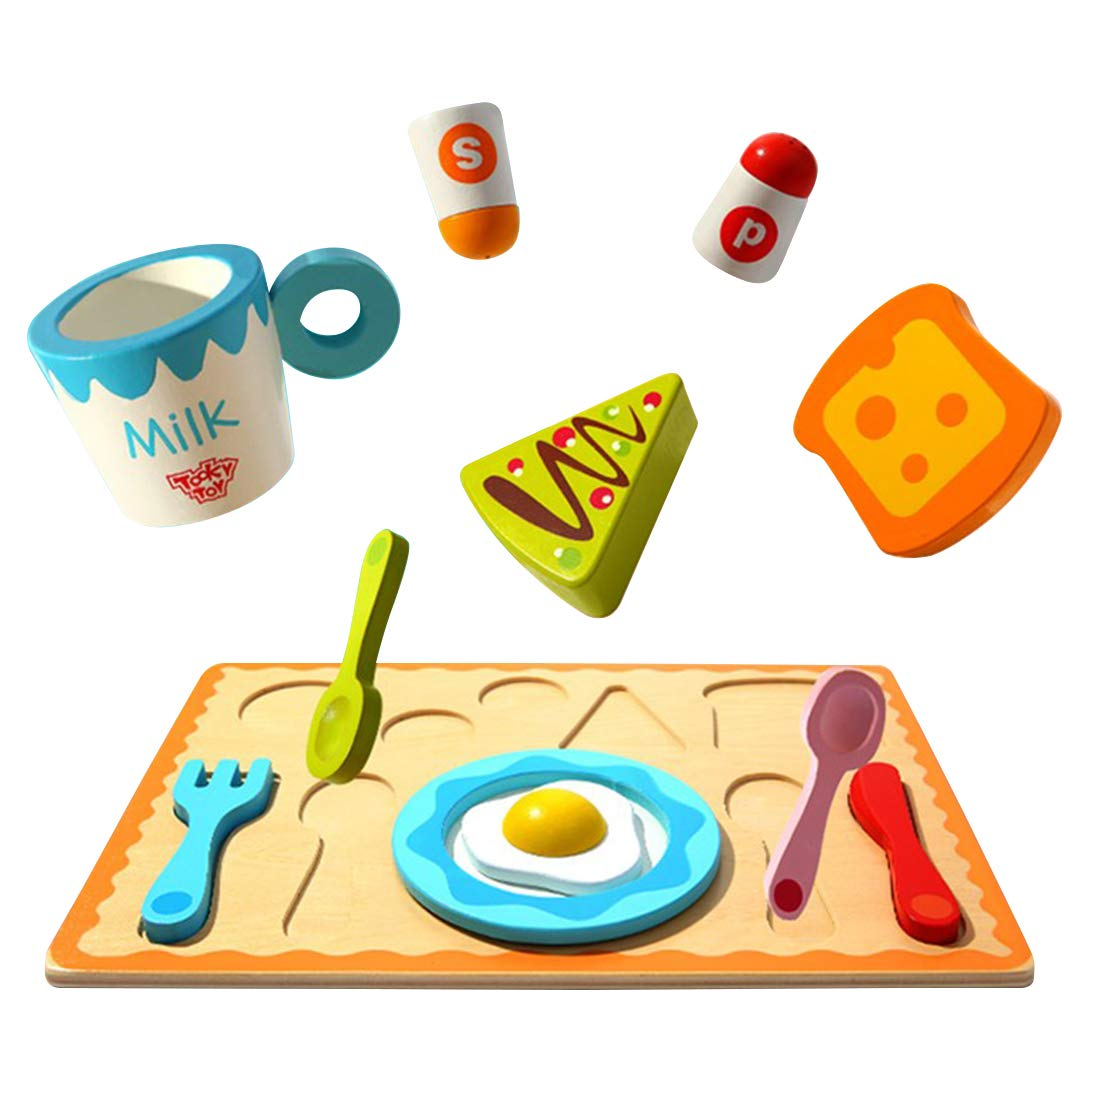 Tray of food wooden clipart clip free download Amazon.com: WEYFLY Childrens Wooden Play Food Set, Breakfast ... clip free download